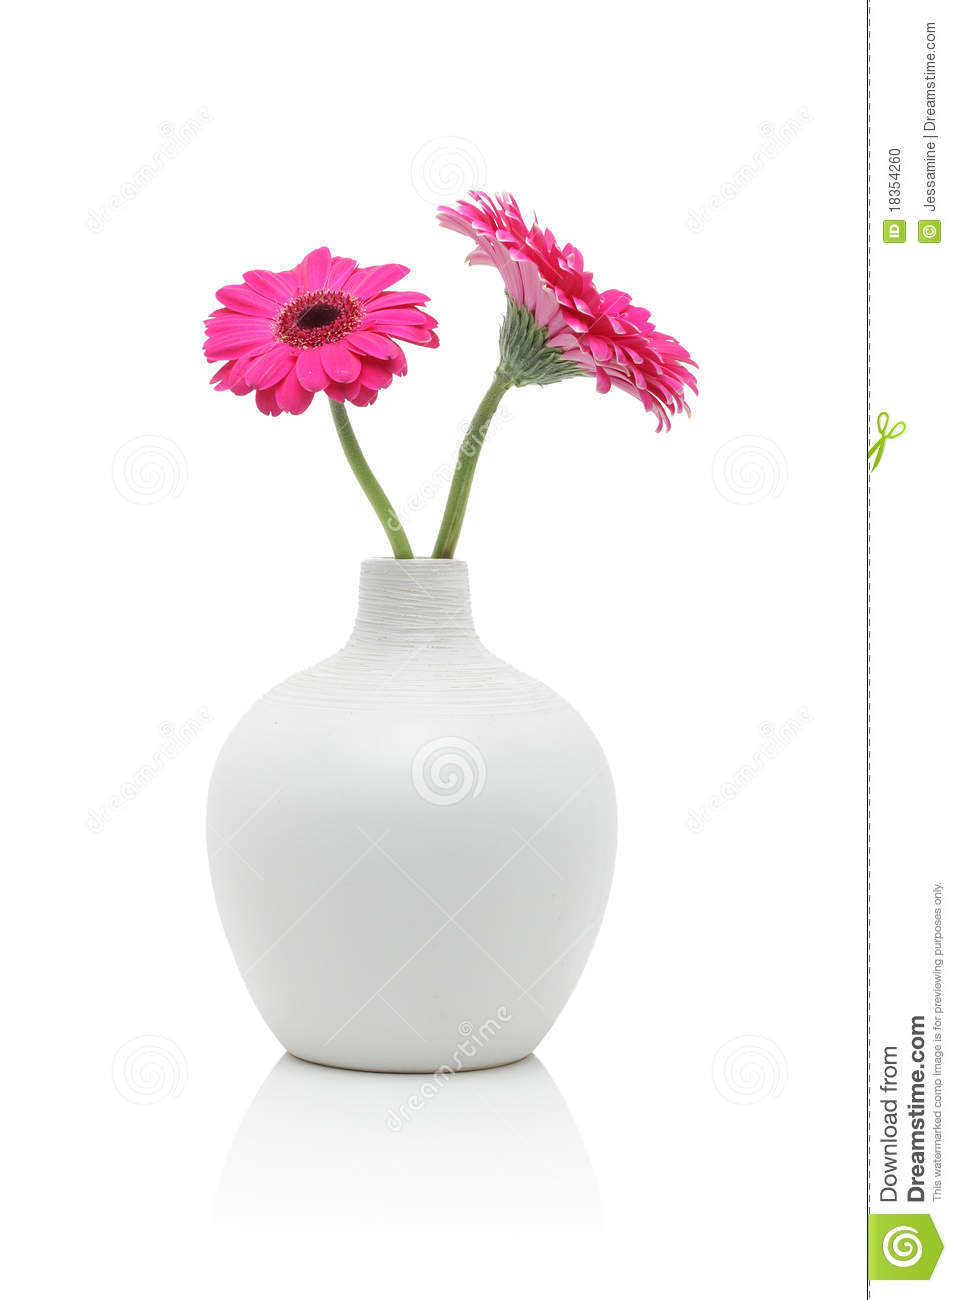 deux fleurs roses de gerbera dans le vase blanc photo stock image du bouquet lumineux 18354260. Black Bedroom Furniture Sets. Home Design Ideas